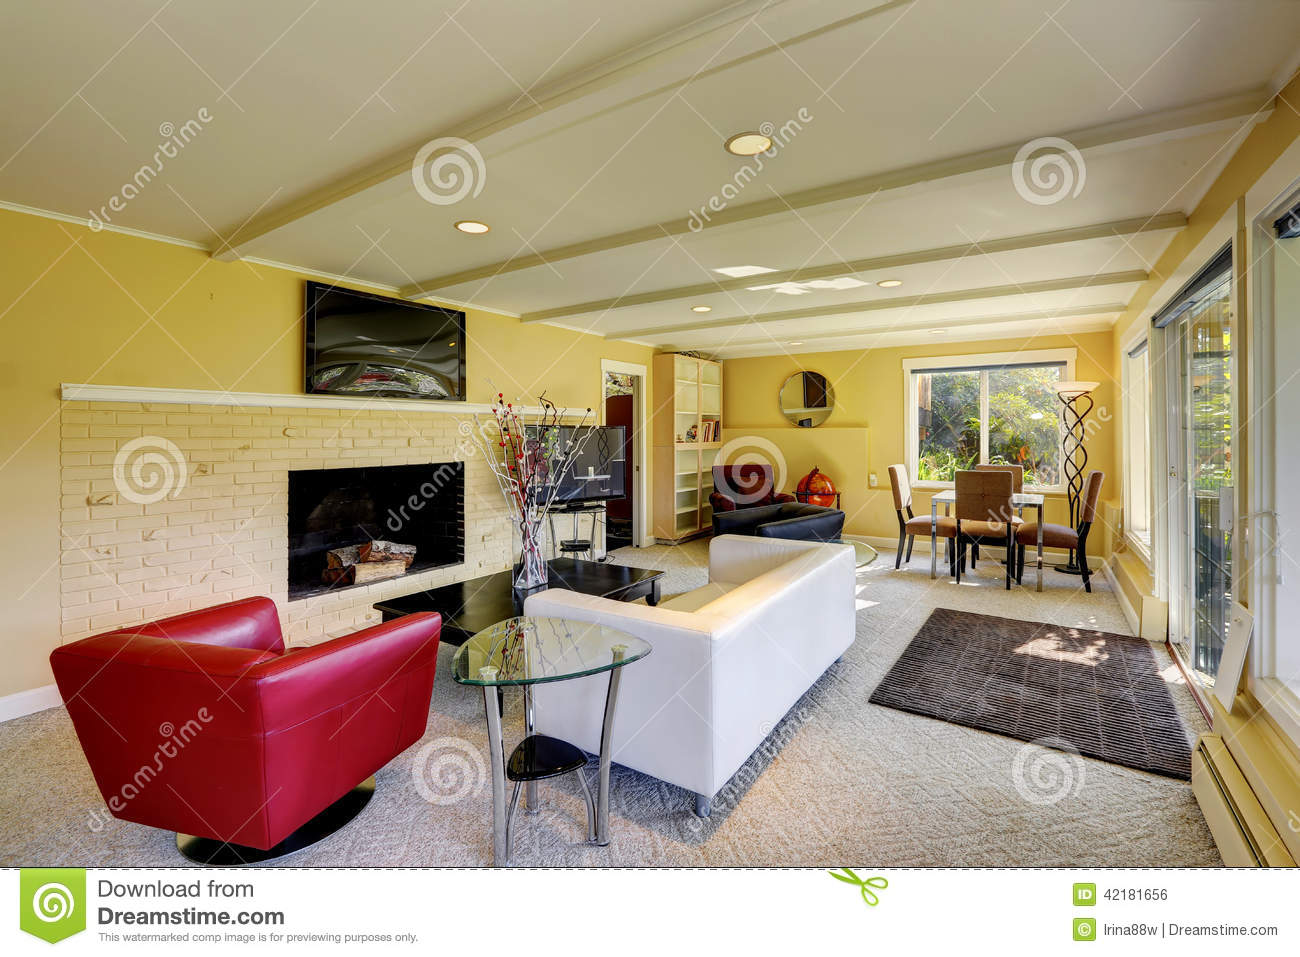 Salon moderne avec les sofas blancs et rouges photo stock   image ...